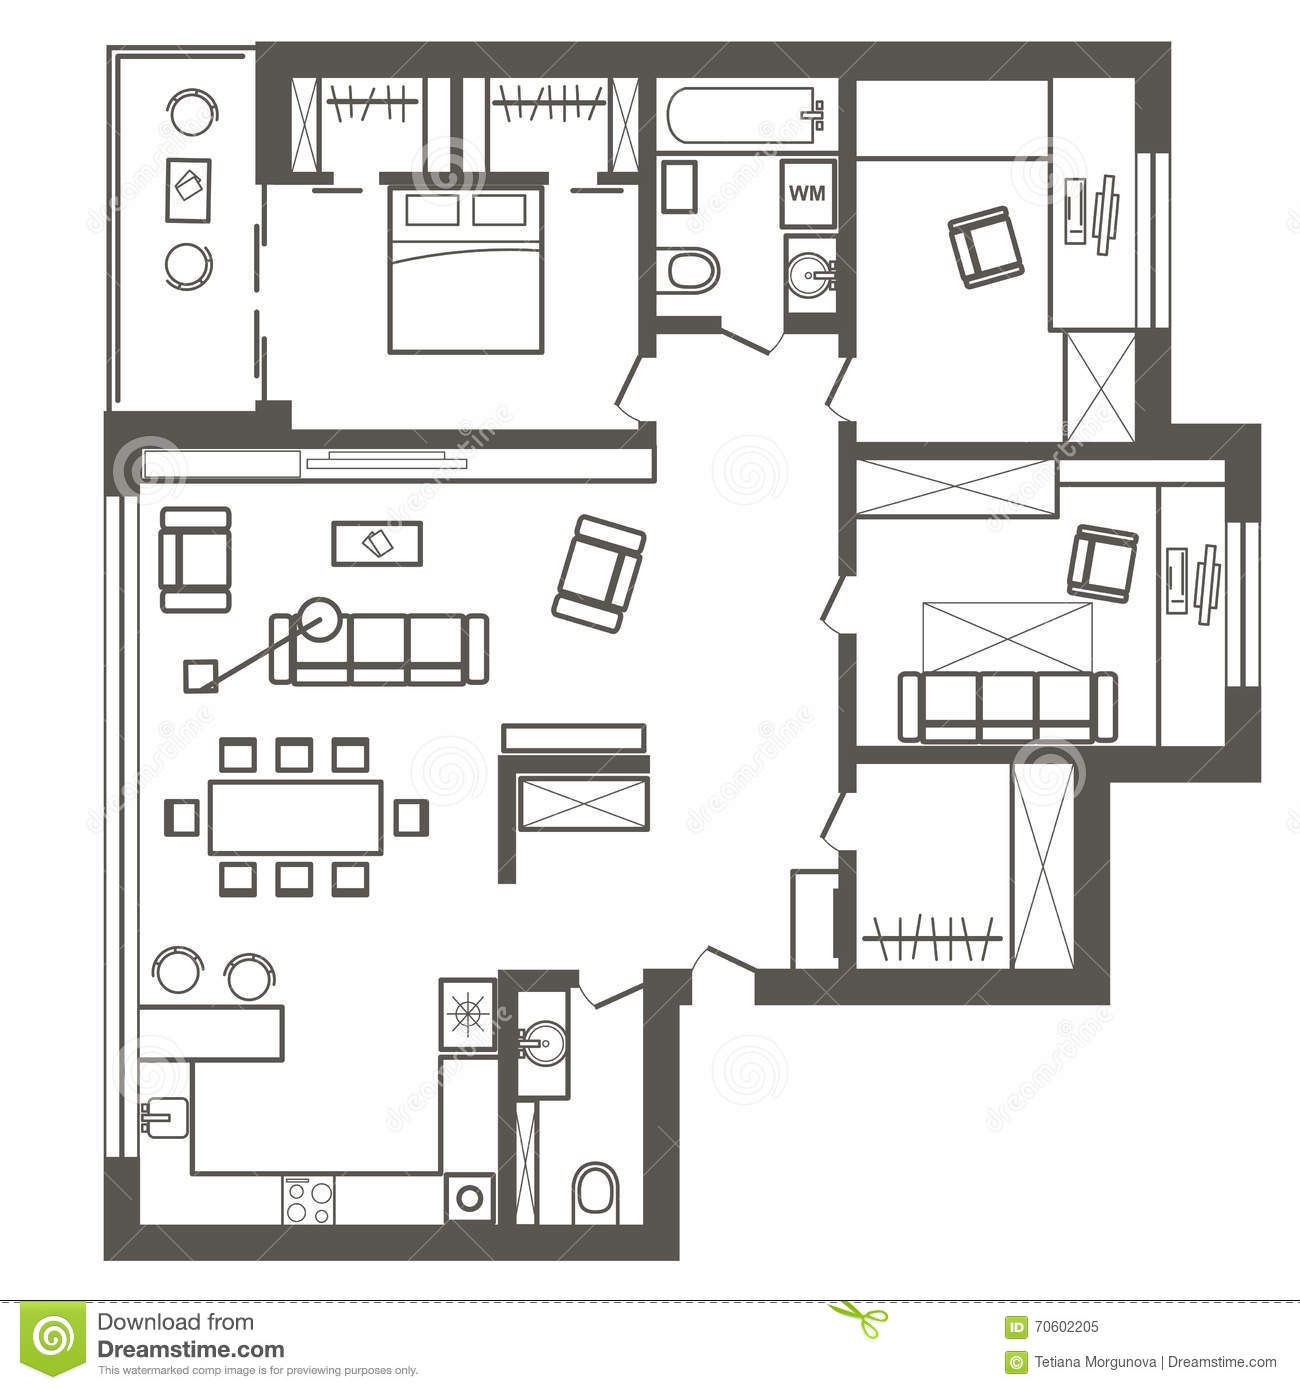 Architectural sketch plan of three bedroom apartment stock for Sketch plan for 2 bedroom house